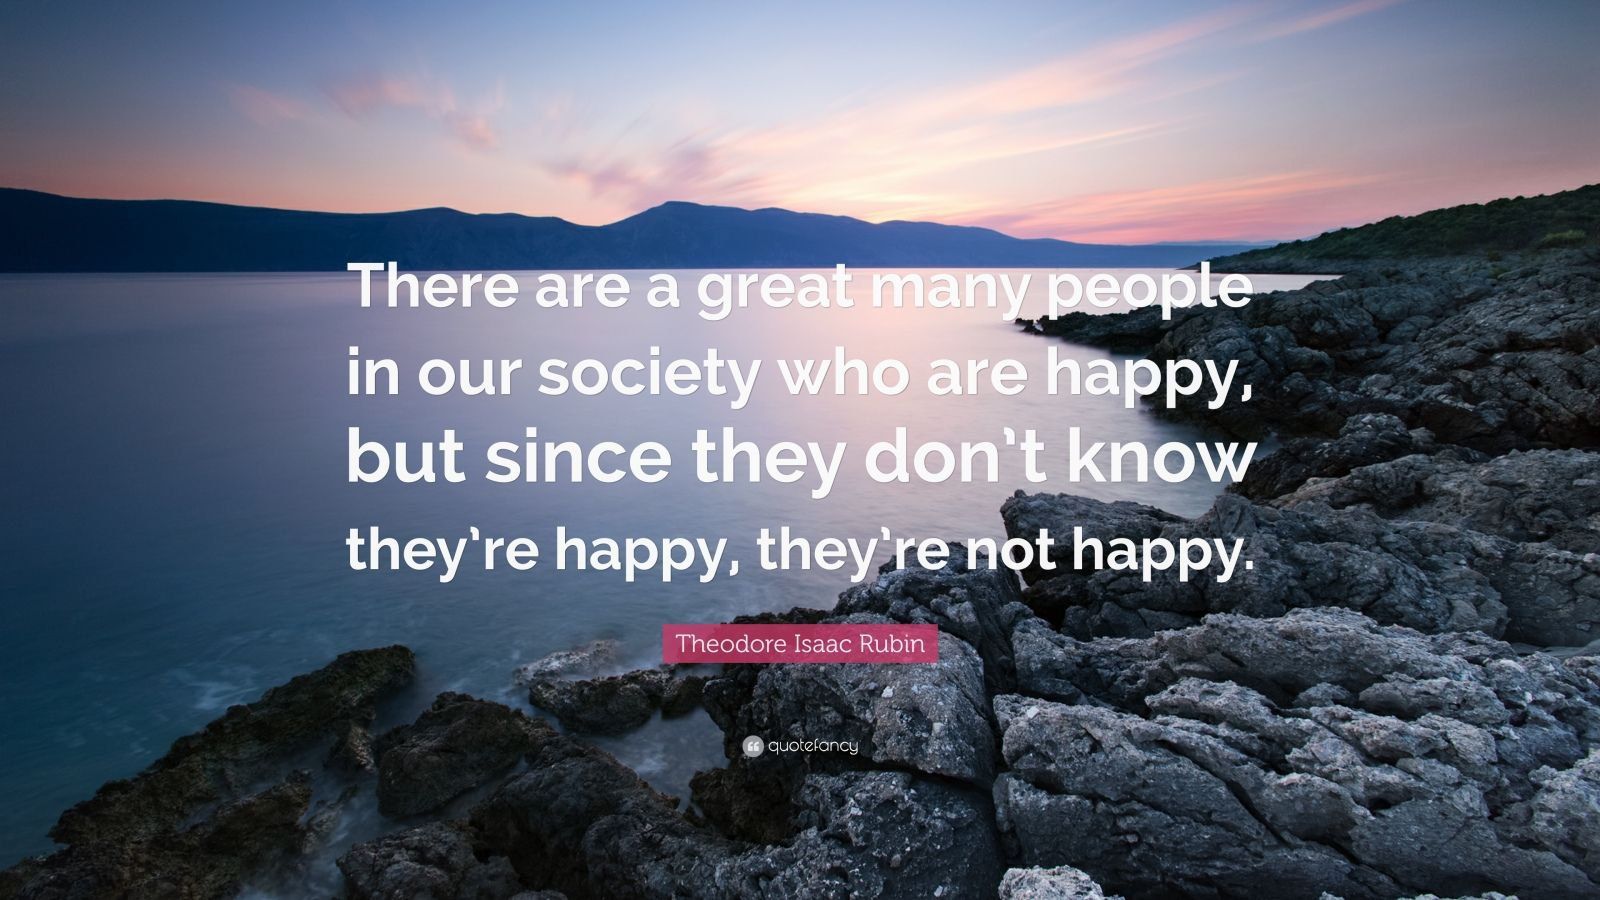 """Theodore Isaac Rubin Quote: """"There are a great many people in our society who are happy, but since they don't know they're happy, they're not happy."""""""